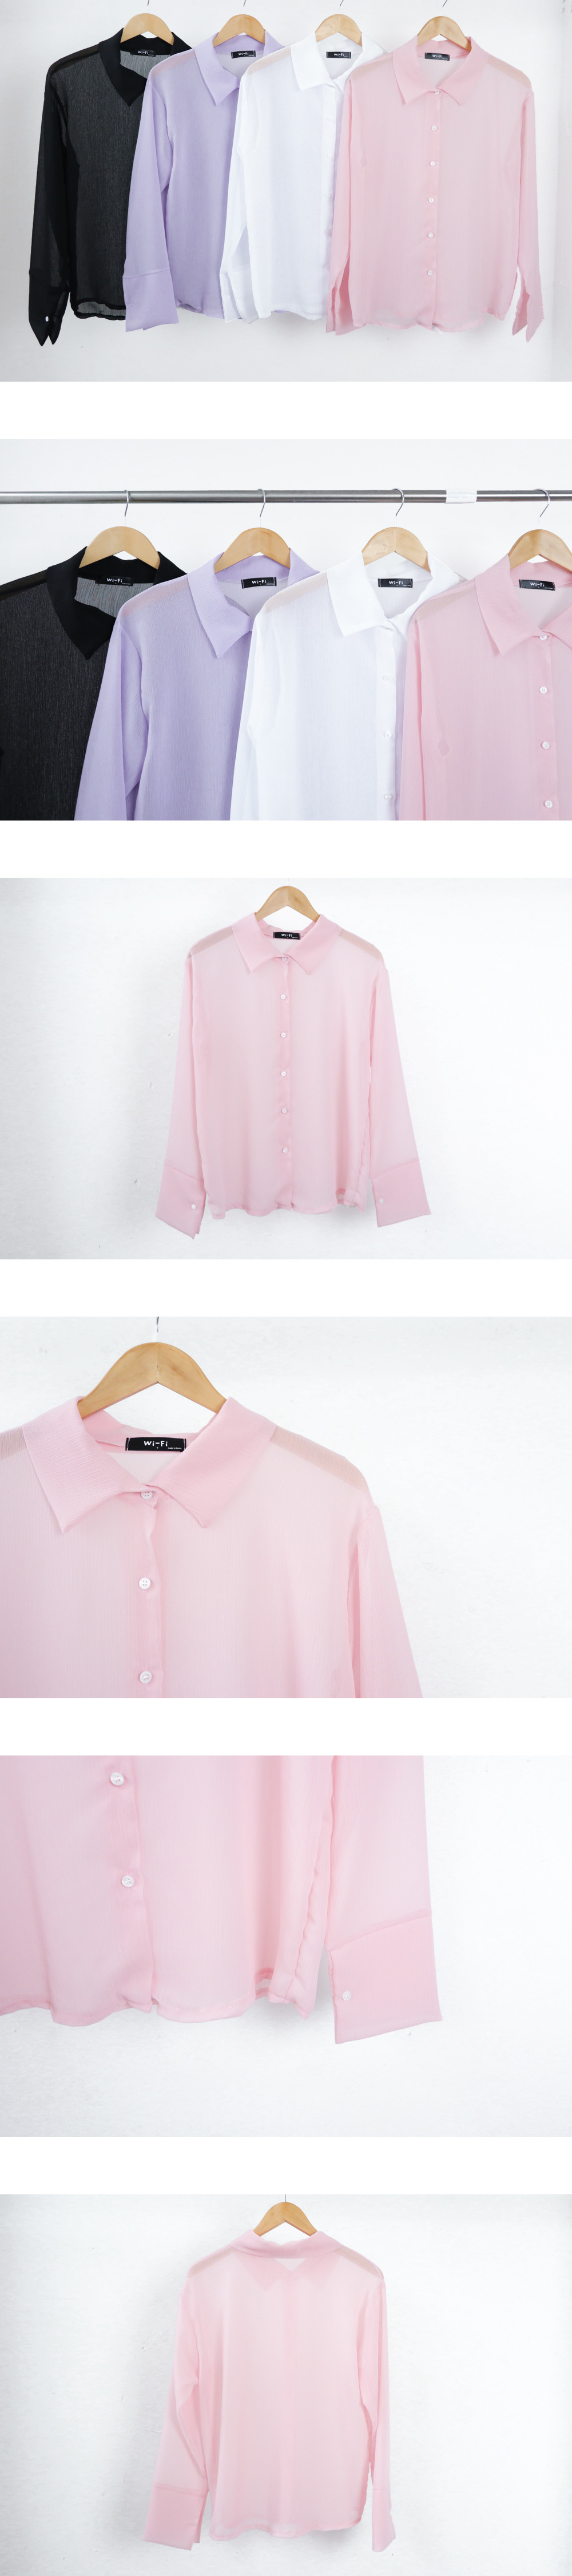 Yoru cuff see-through shirt